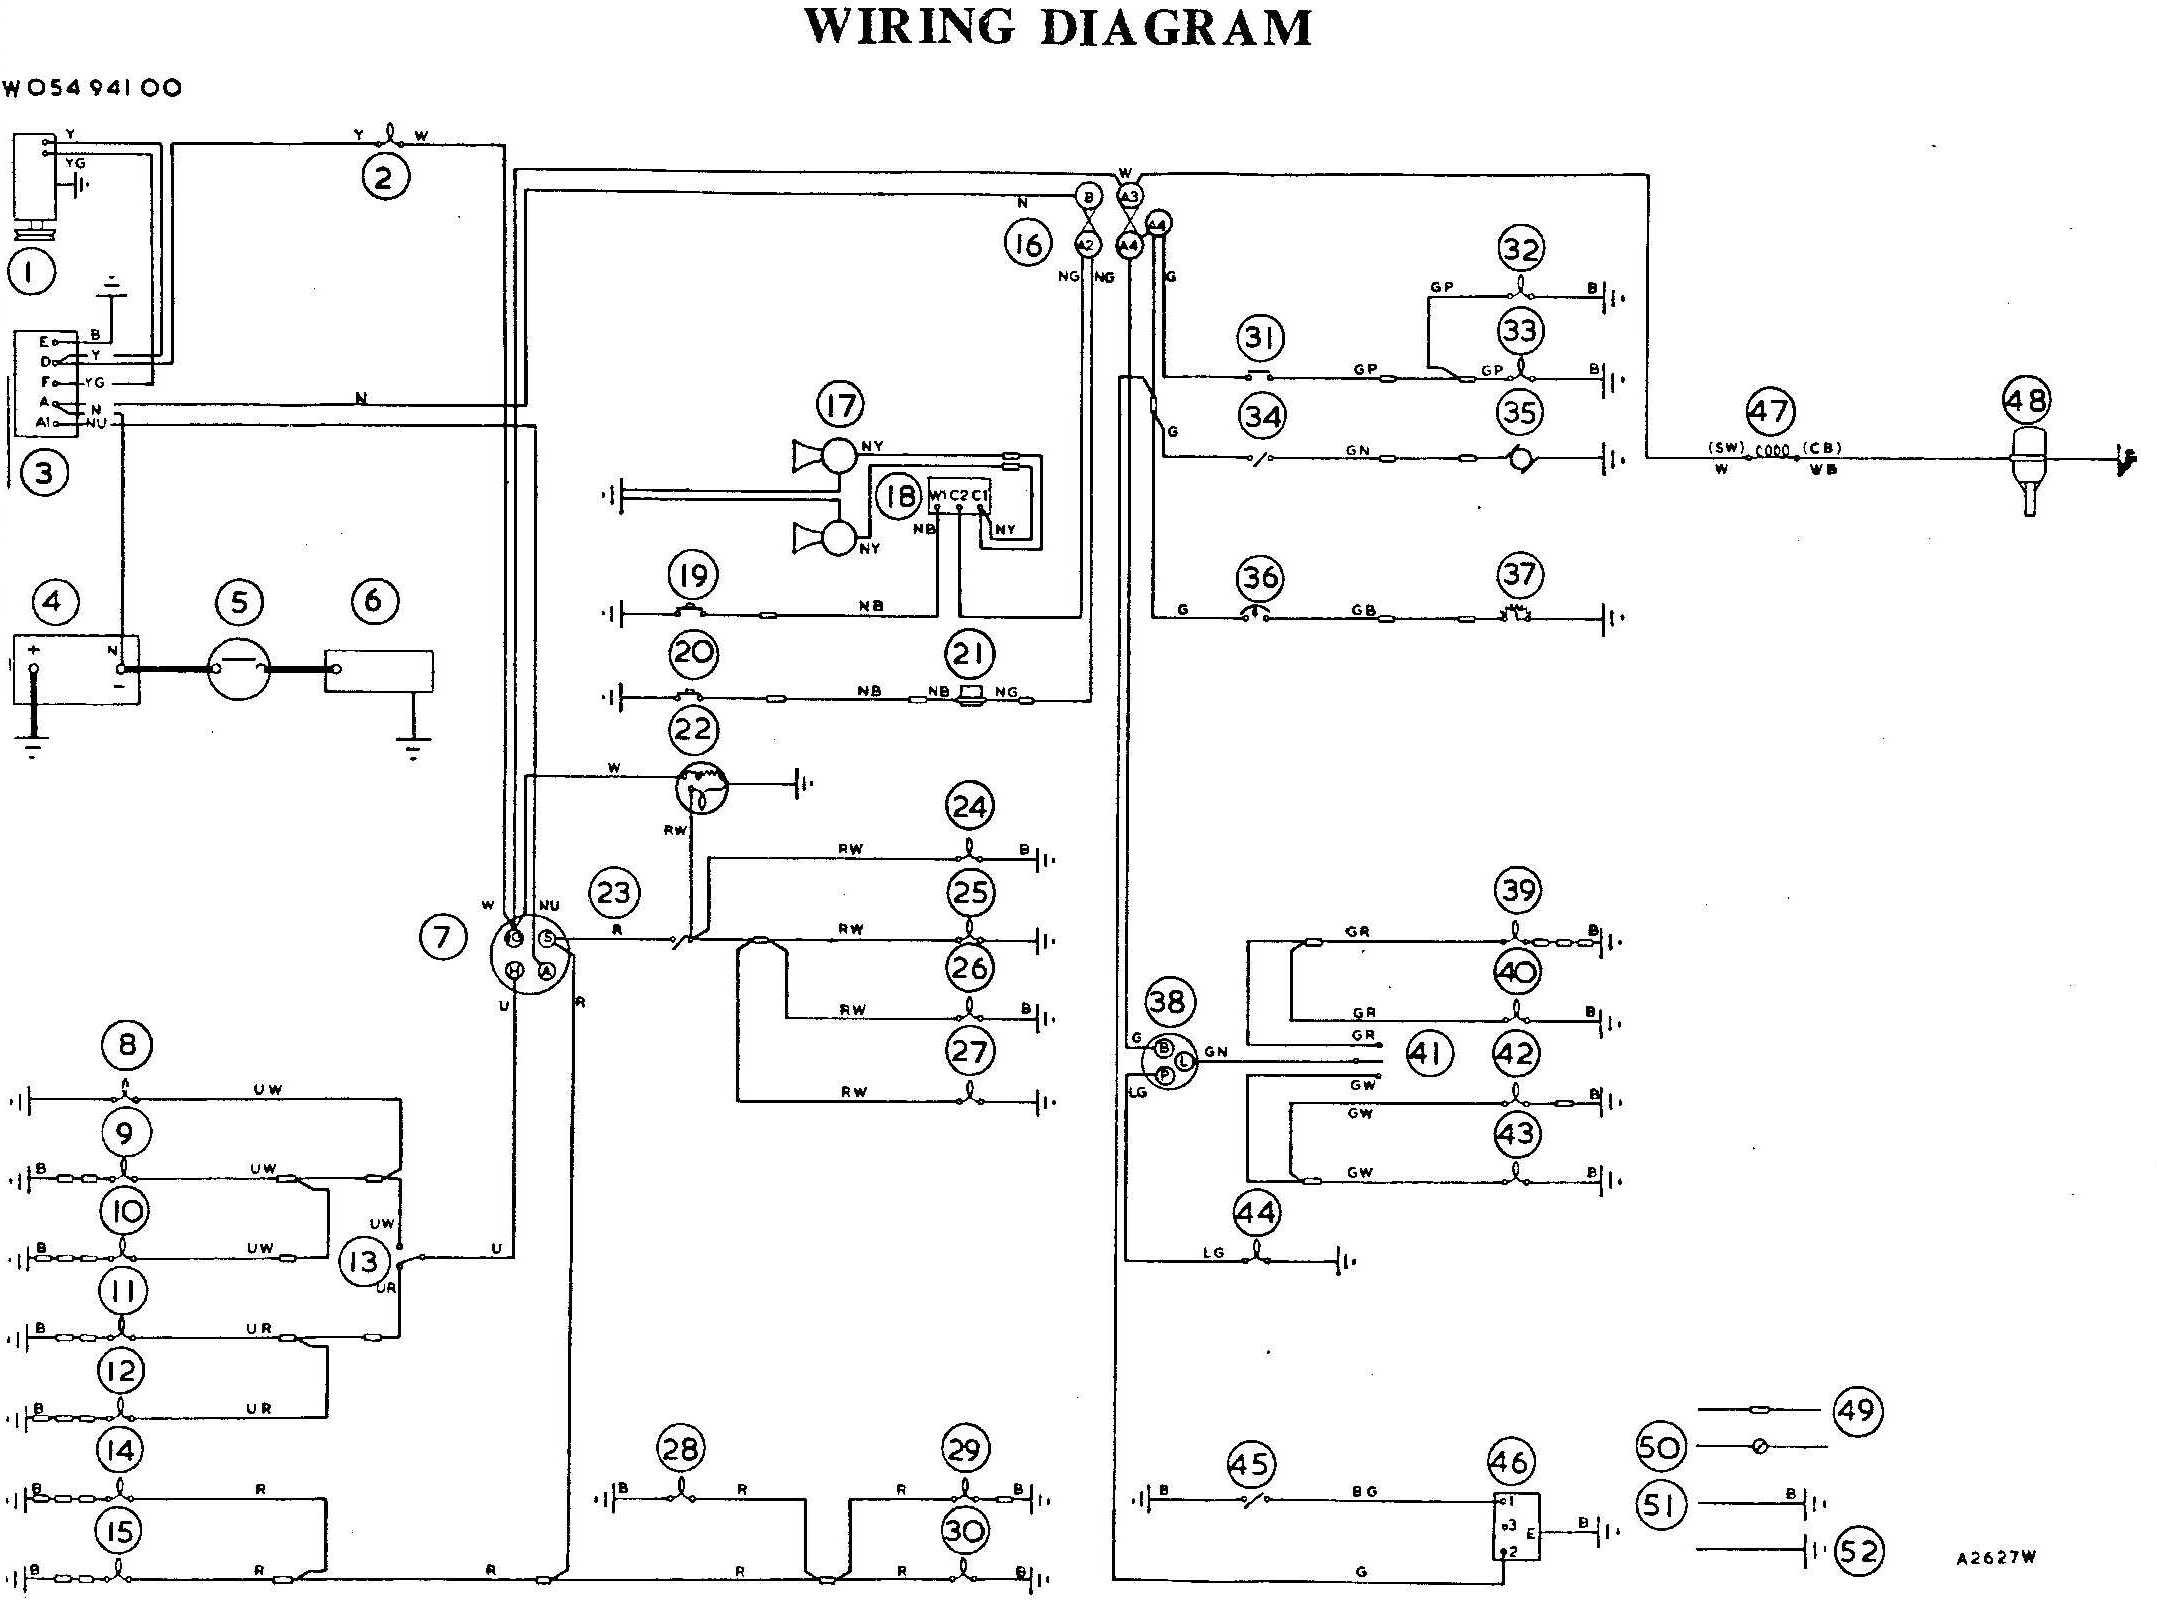 boss garage door wiring diagram garage schematic wiring diagram morrisdenman s blog